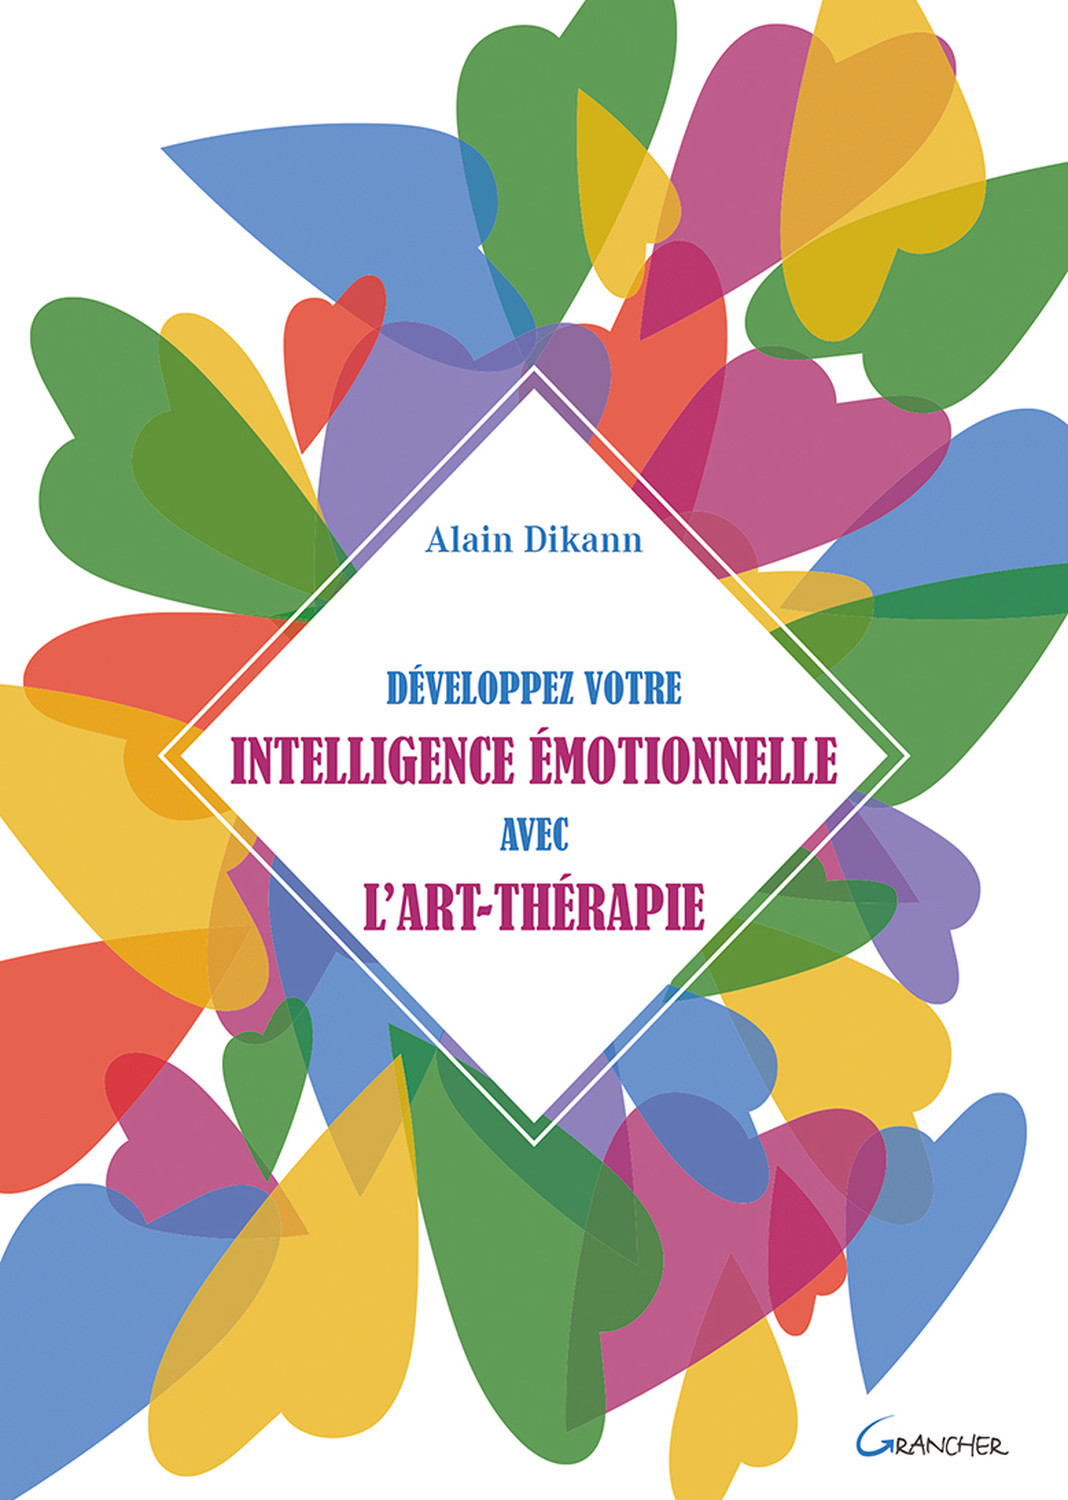 DEVELOPPEZ VOTRE INTELLIGENCE EMOTIONNELLE AVEC L'ART-THERAPIE